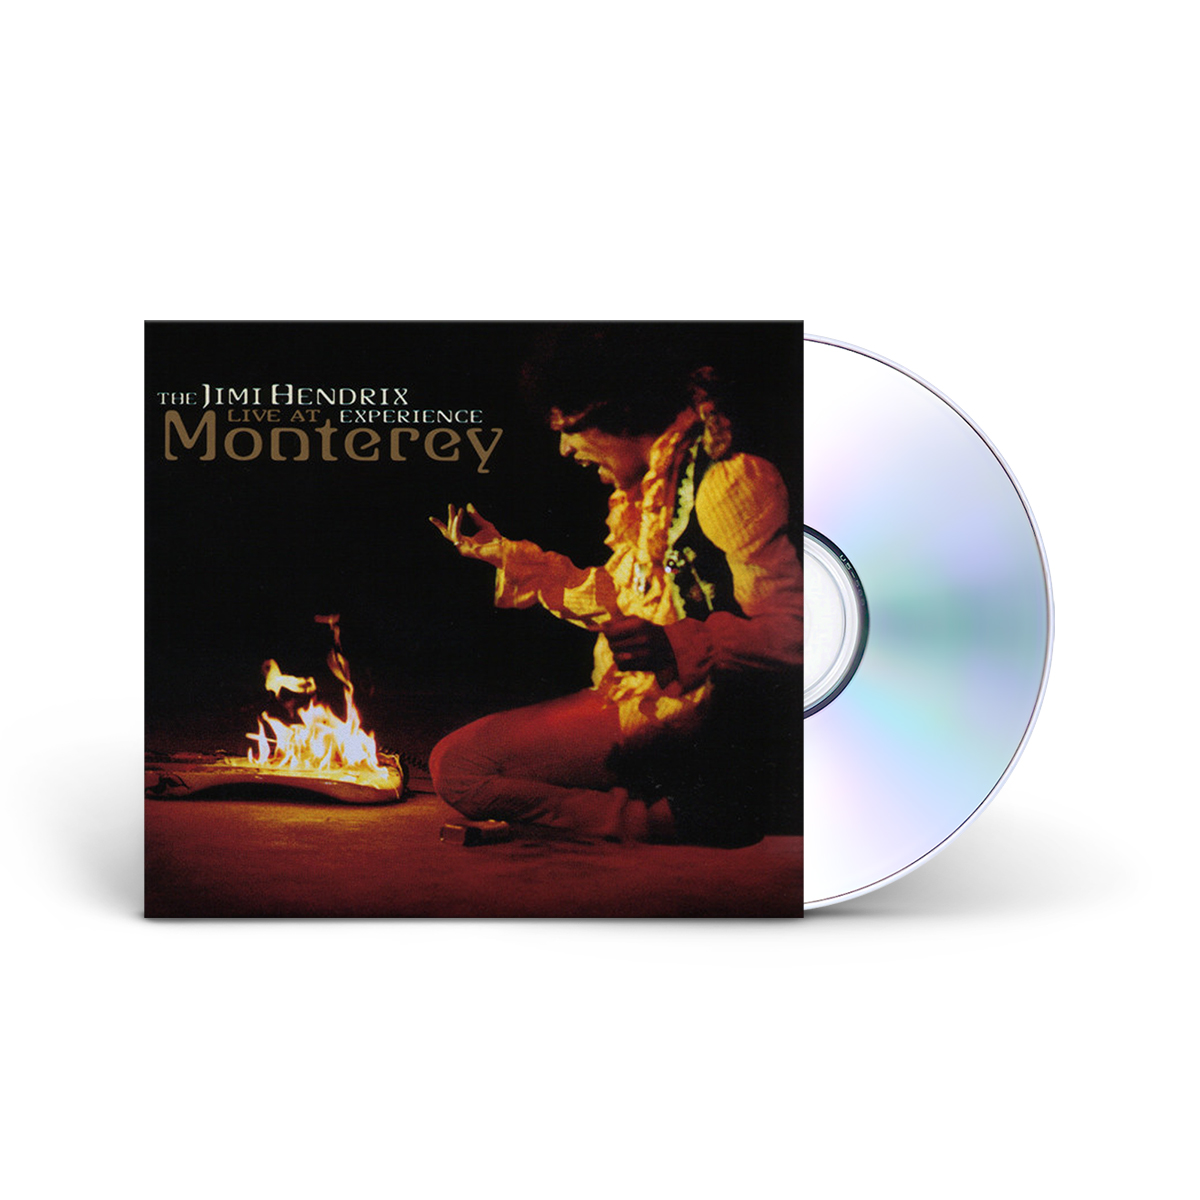 The Jimi Hendrix Experience: Live at Monterey CD